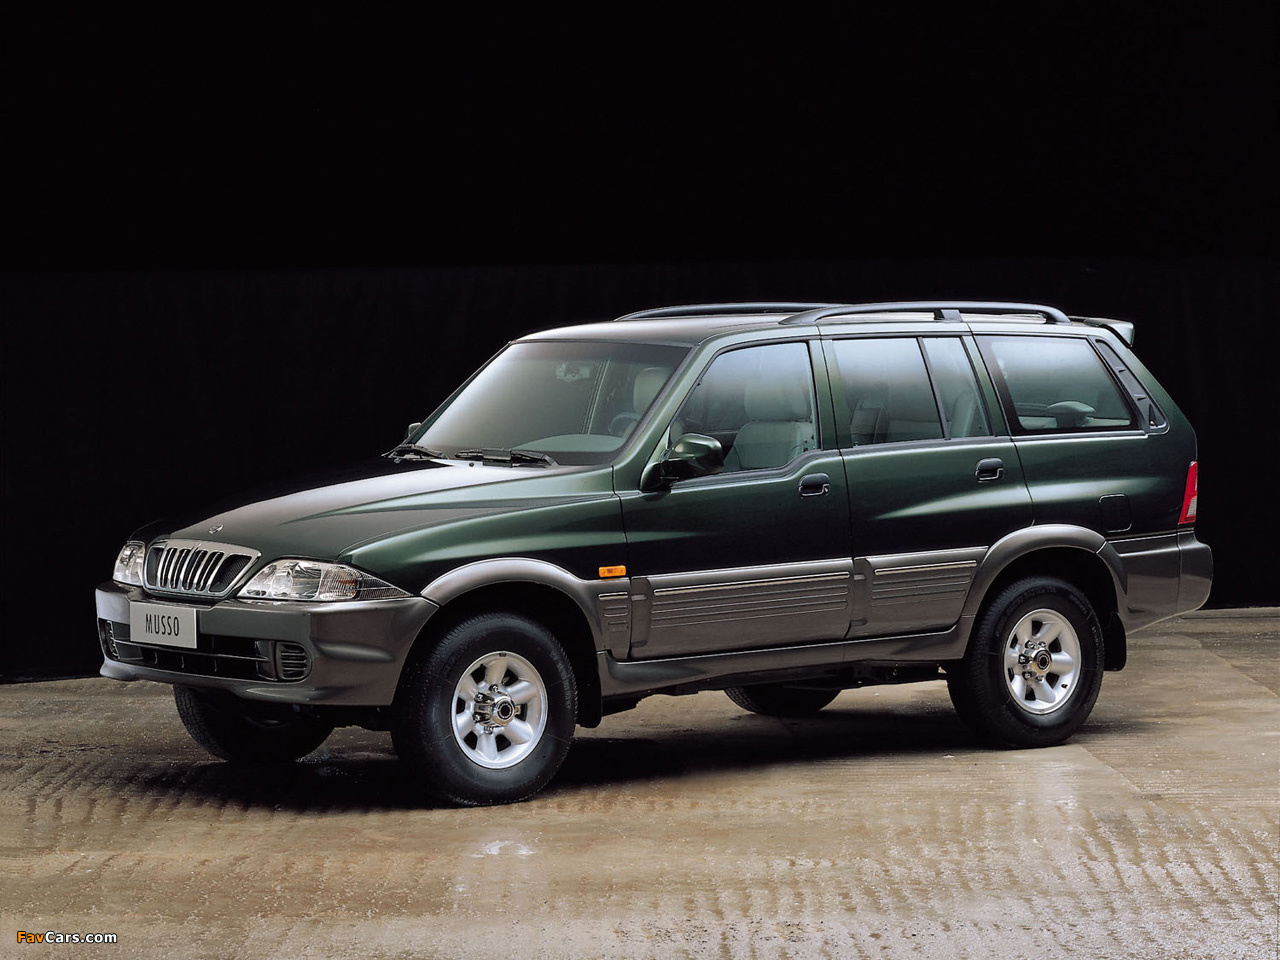 2005 Ssangyong Musso #7